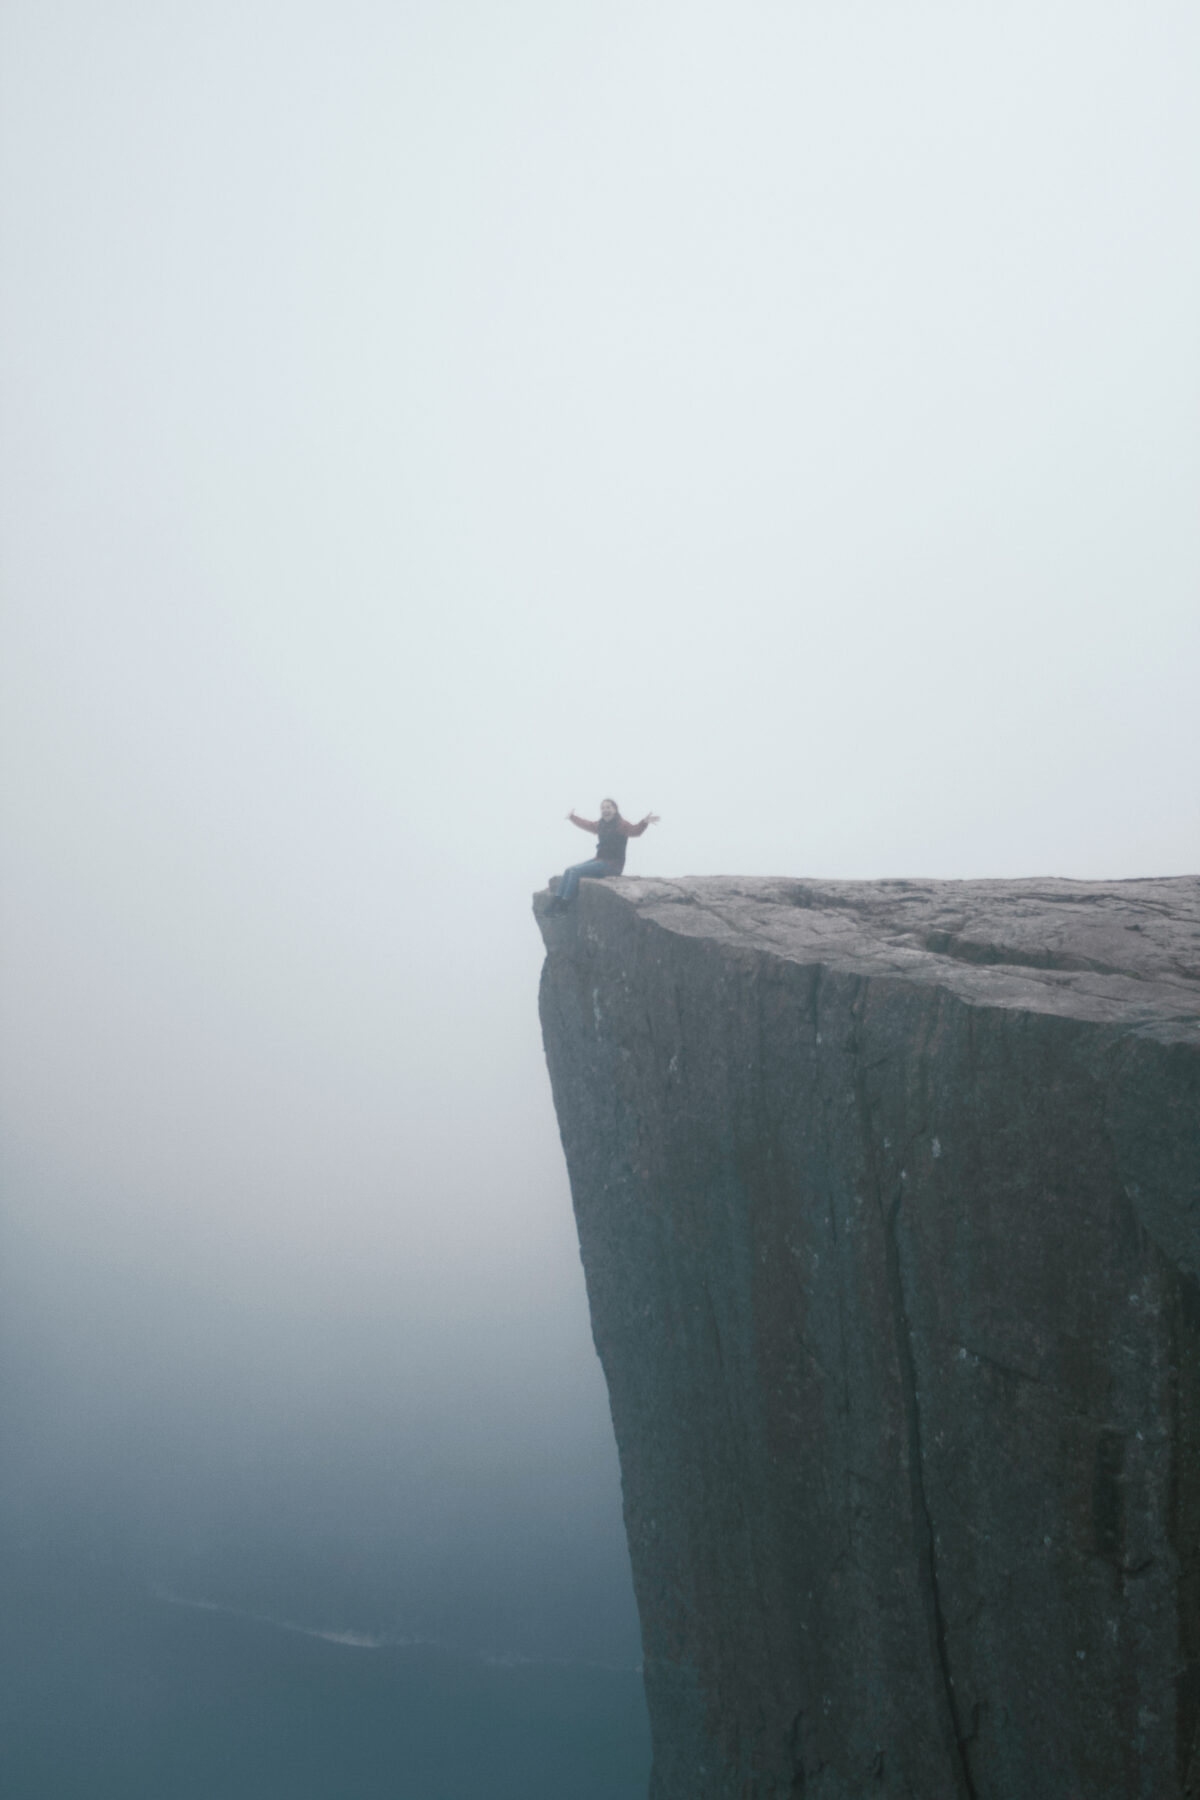 Sitting on the edge of the Pulpit Rock